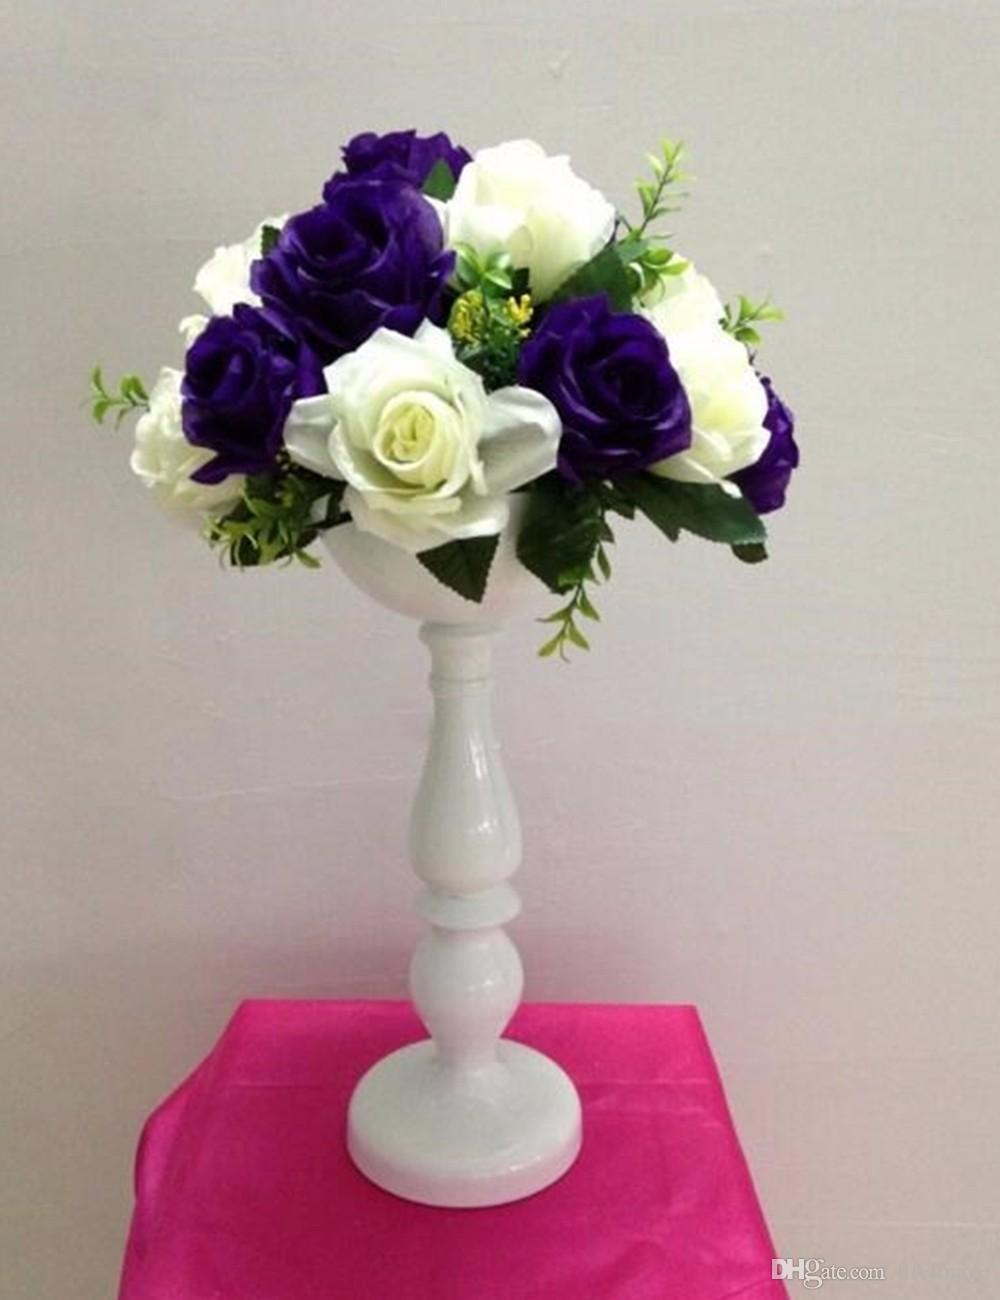 Elegant 37 Cm Height White Metal Flower Vases Wedding Table Flower